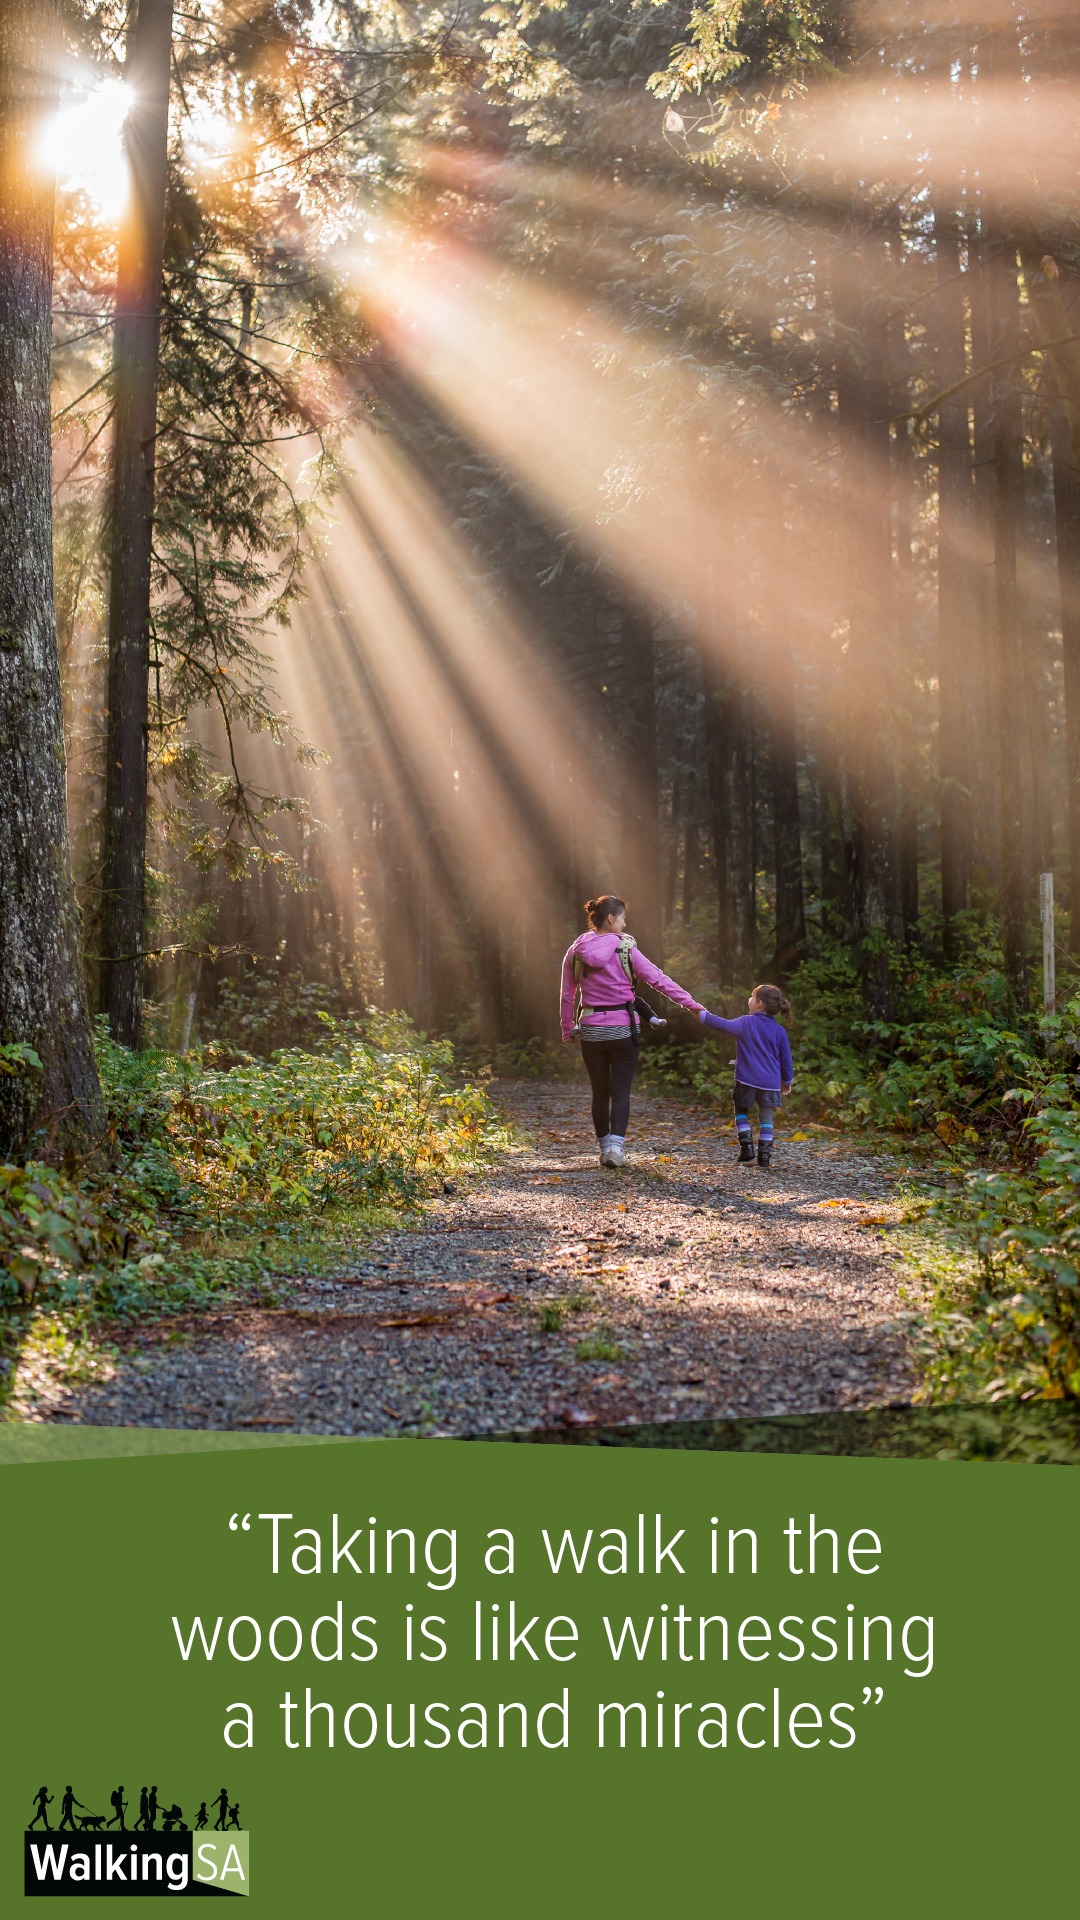 """social media tile Square 1080px x 1900px: """"Taking a walk in the woods is like witnessing a thousand miracles"""""""